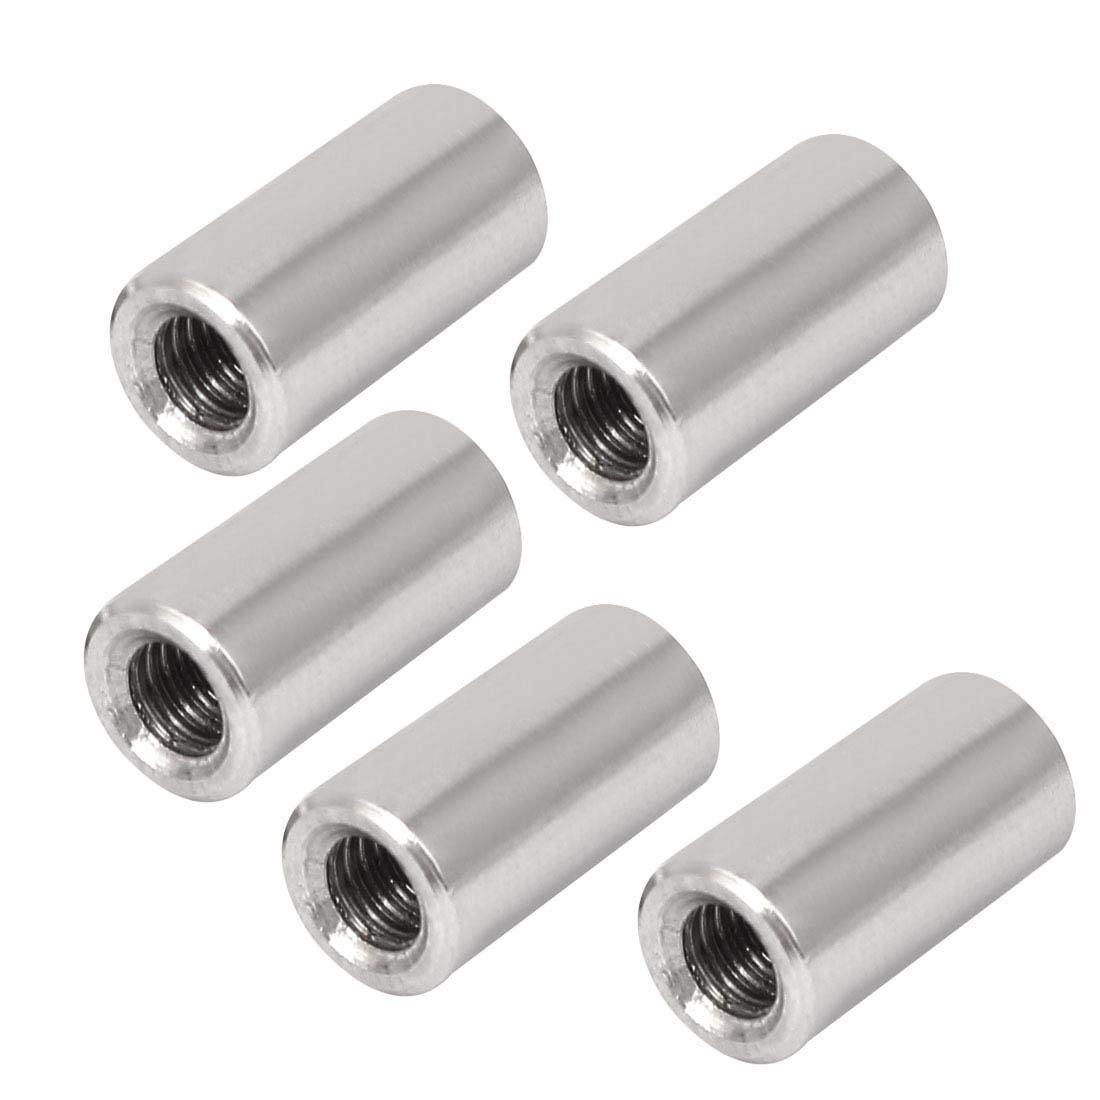 10Pcs Nuts Rose Joint Adapter Round Connector Nuts 304 stainless steel Threaded Sleeve Rod bar Stud Round Coupling Connector Nut m16 1000mm 304 321 316 stainless steel thread bar threaded rod nuts and bolts threaded bar bolts and nuts